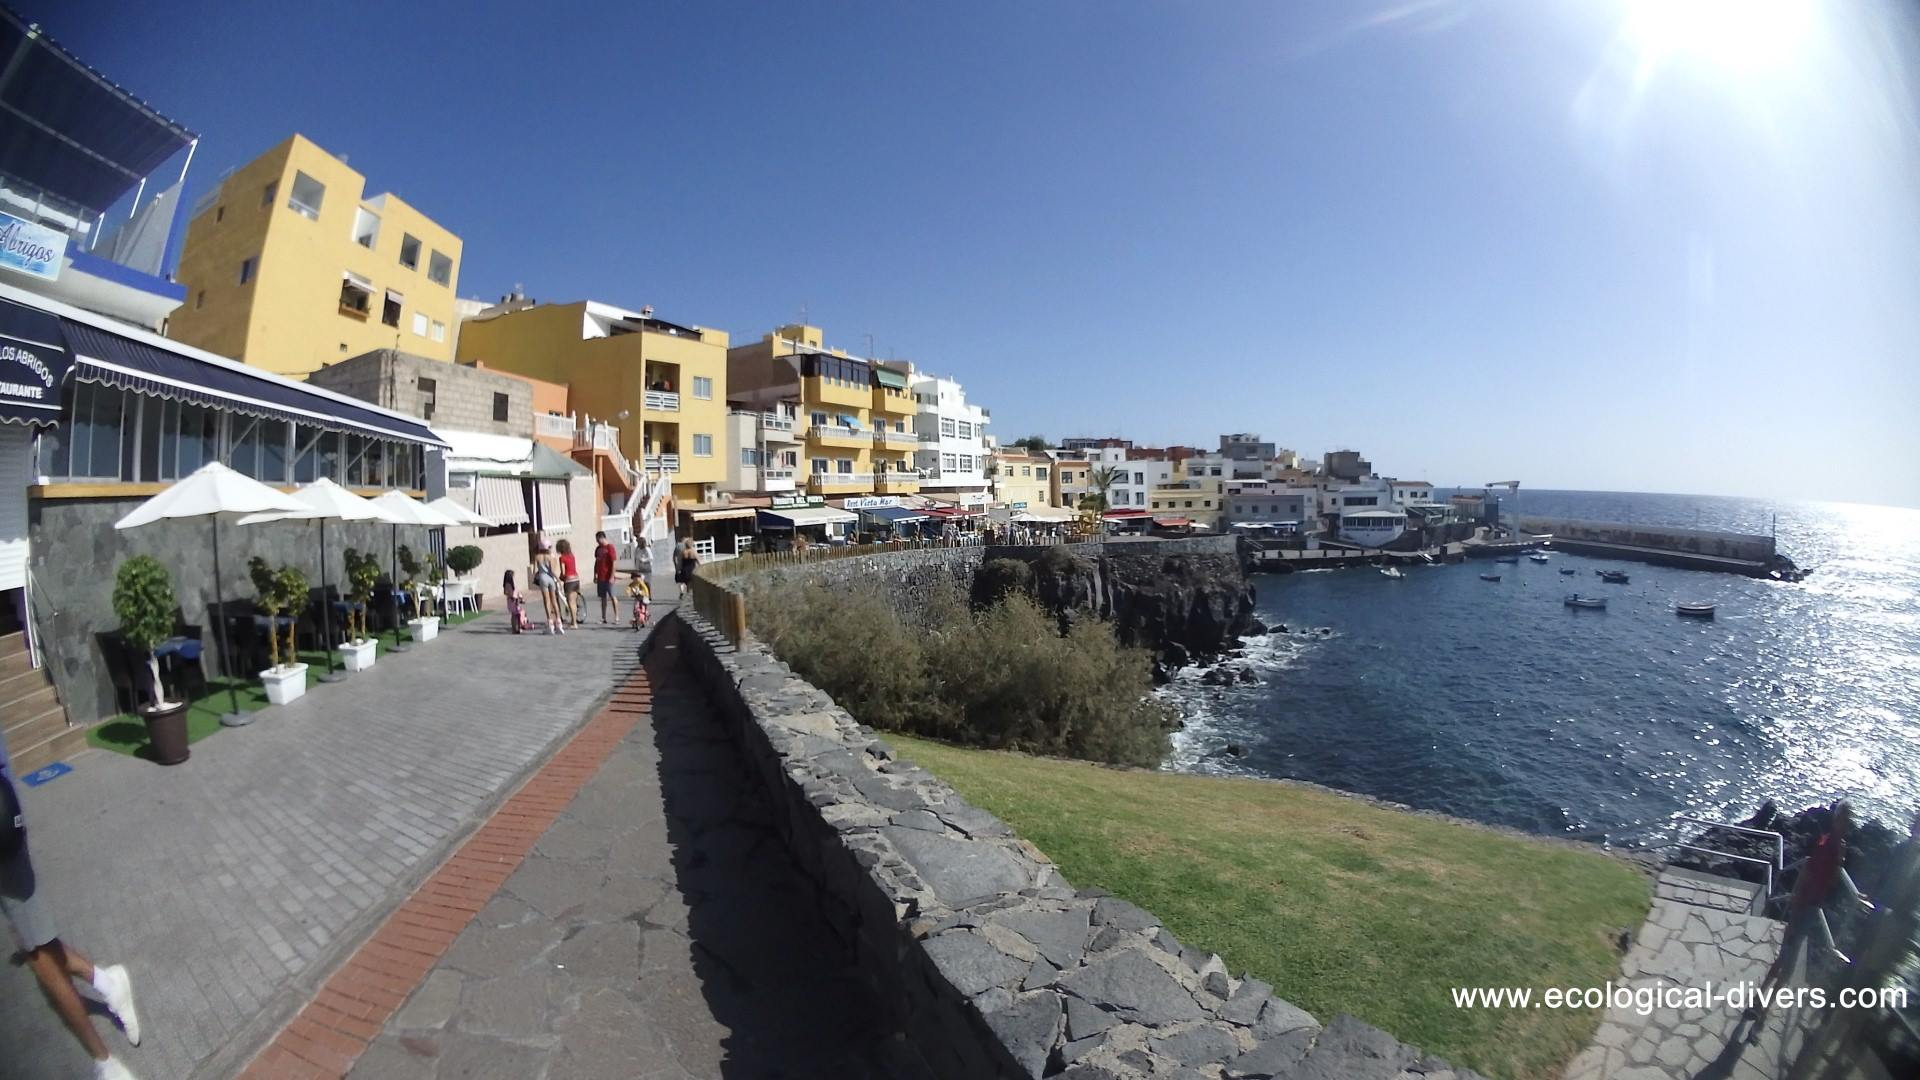 Th harbour from Los Abrigos with the Fish-Restaurants